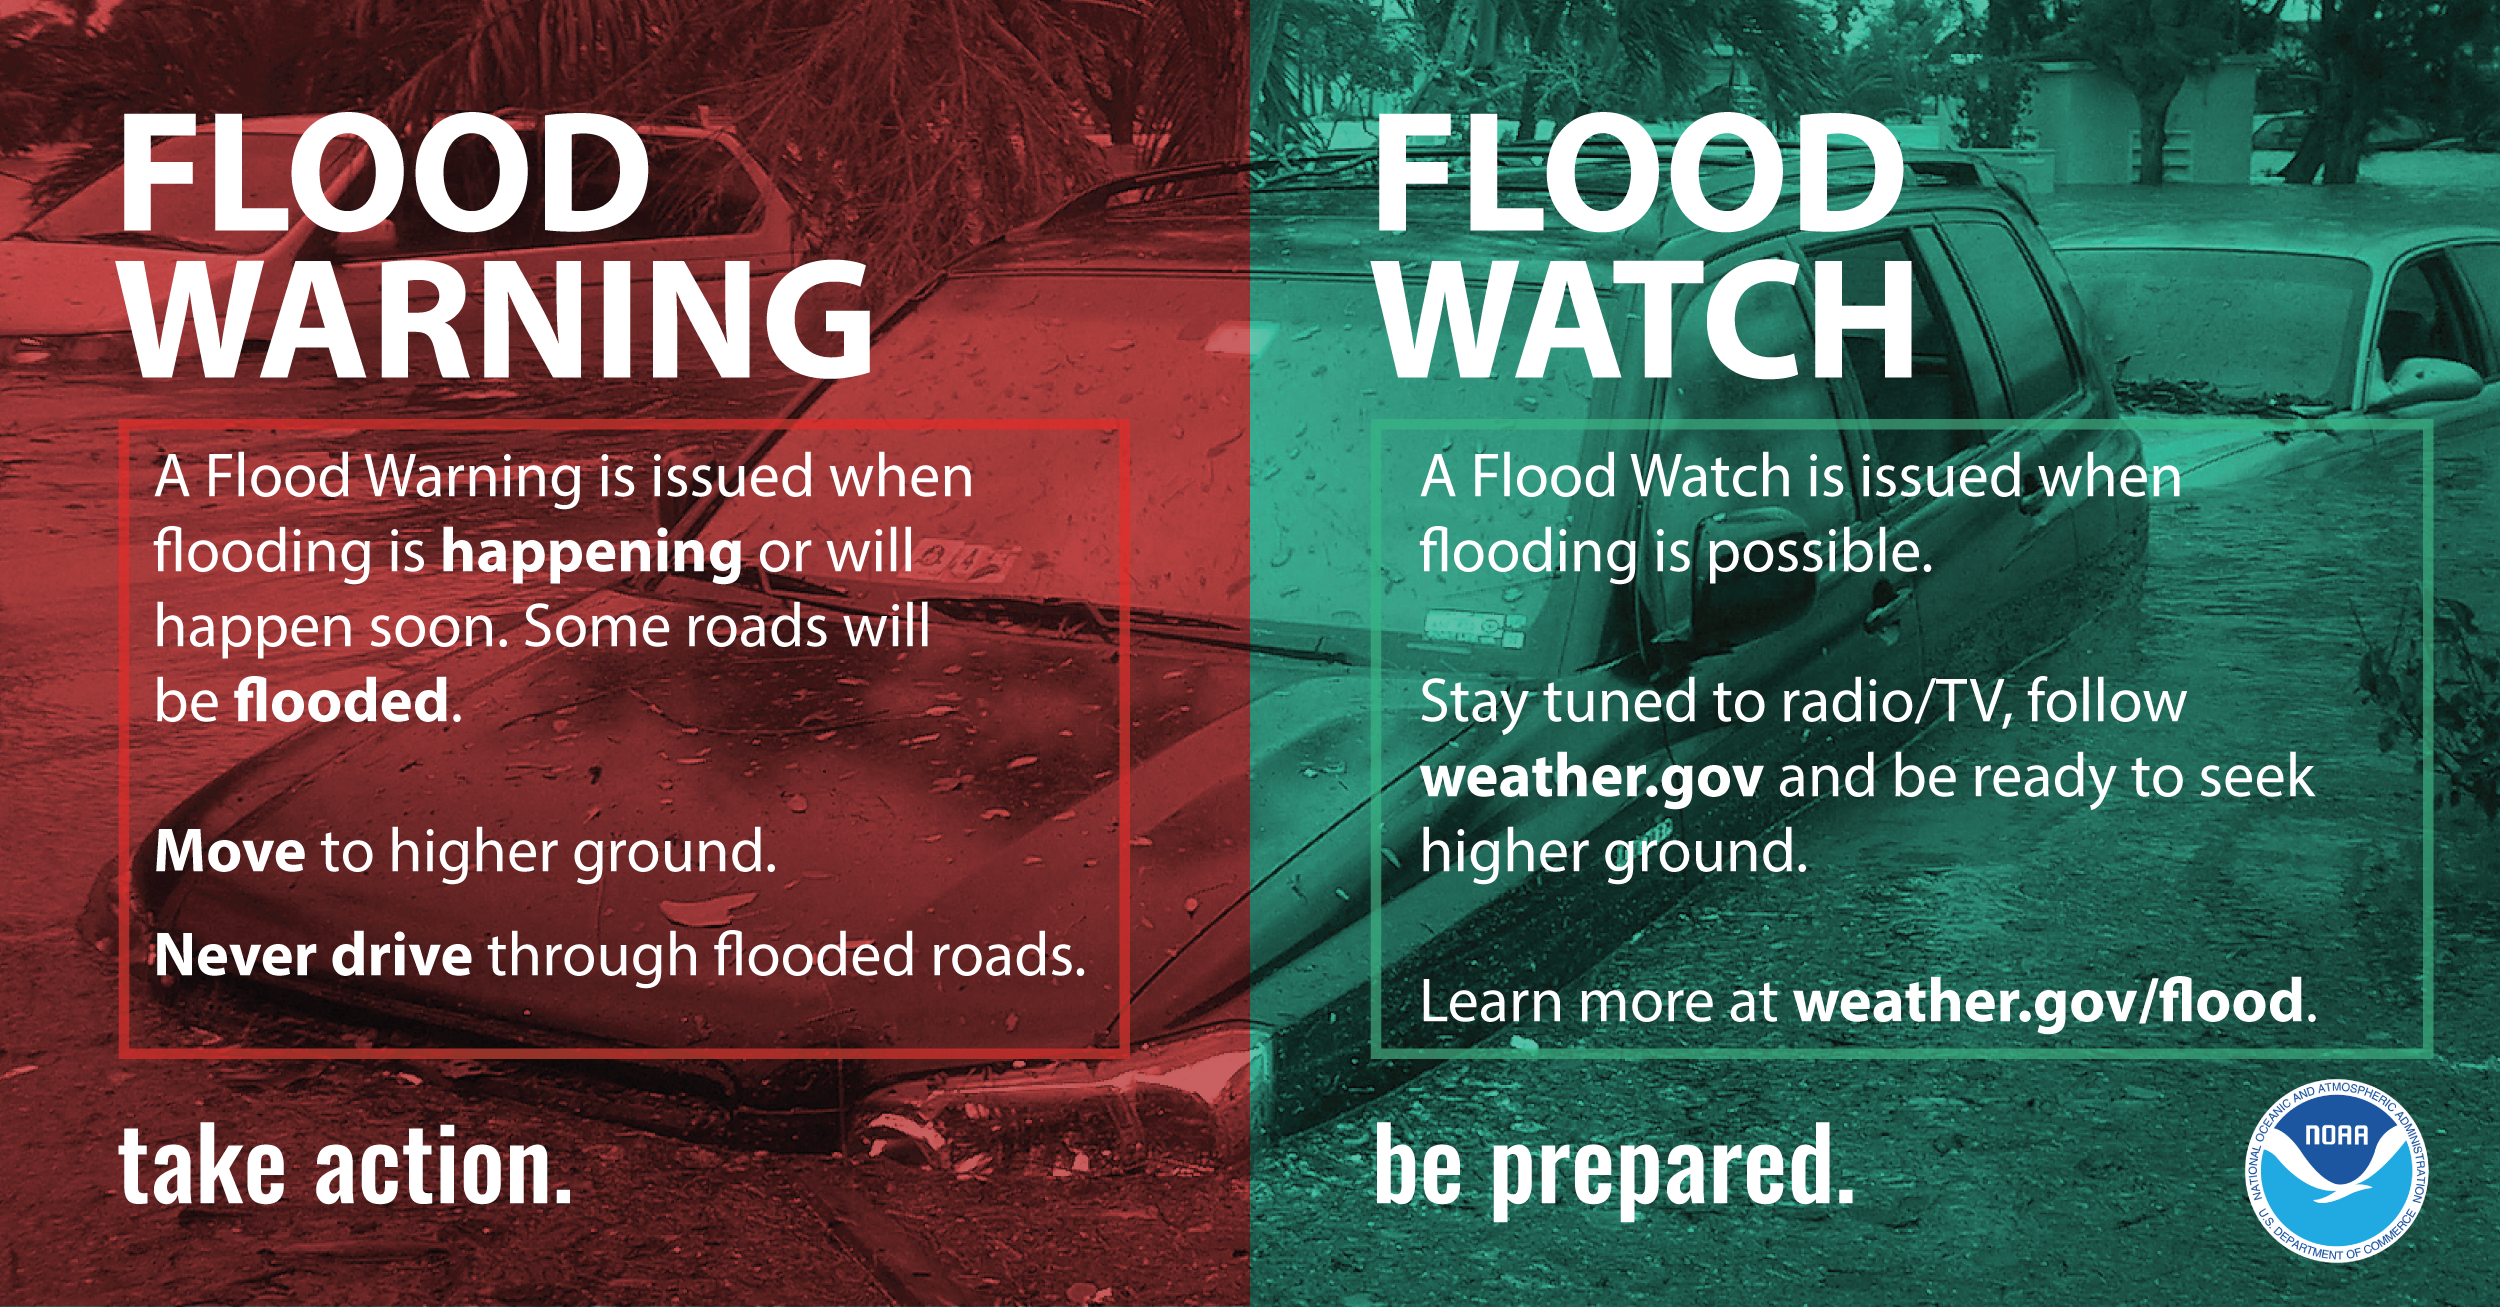 Flood Watch vs Warning